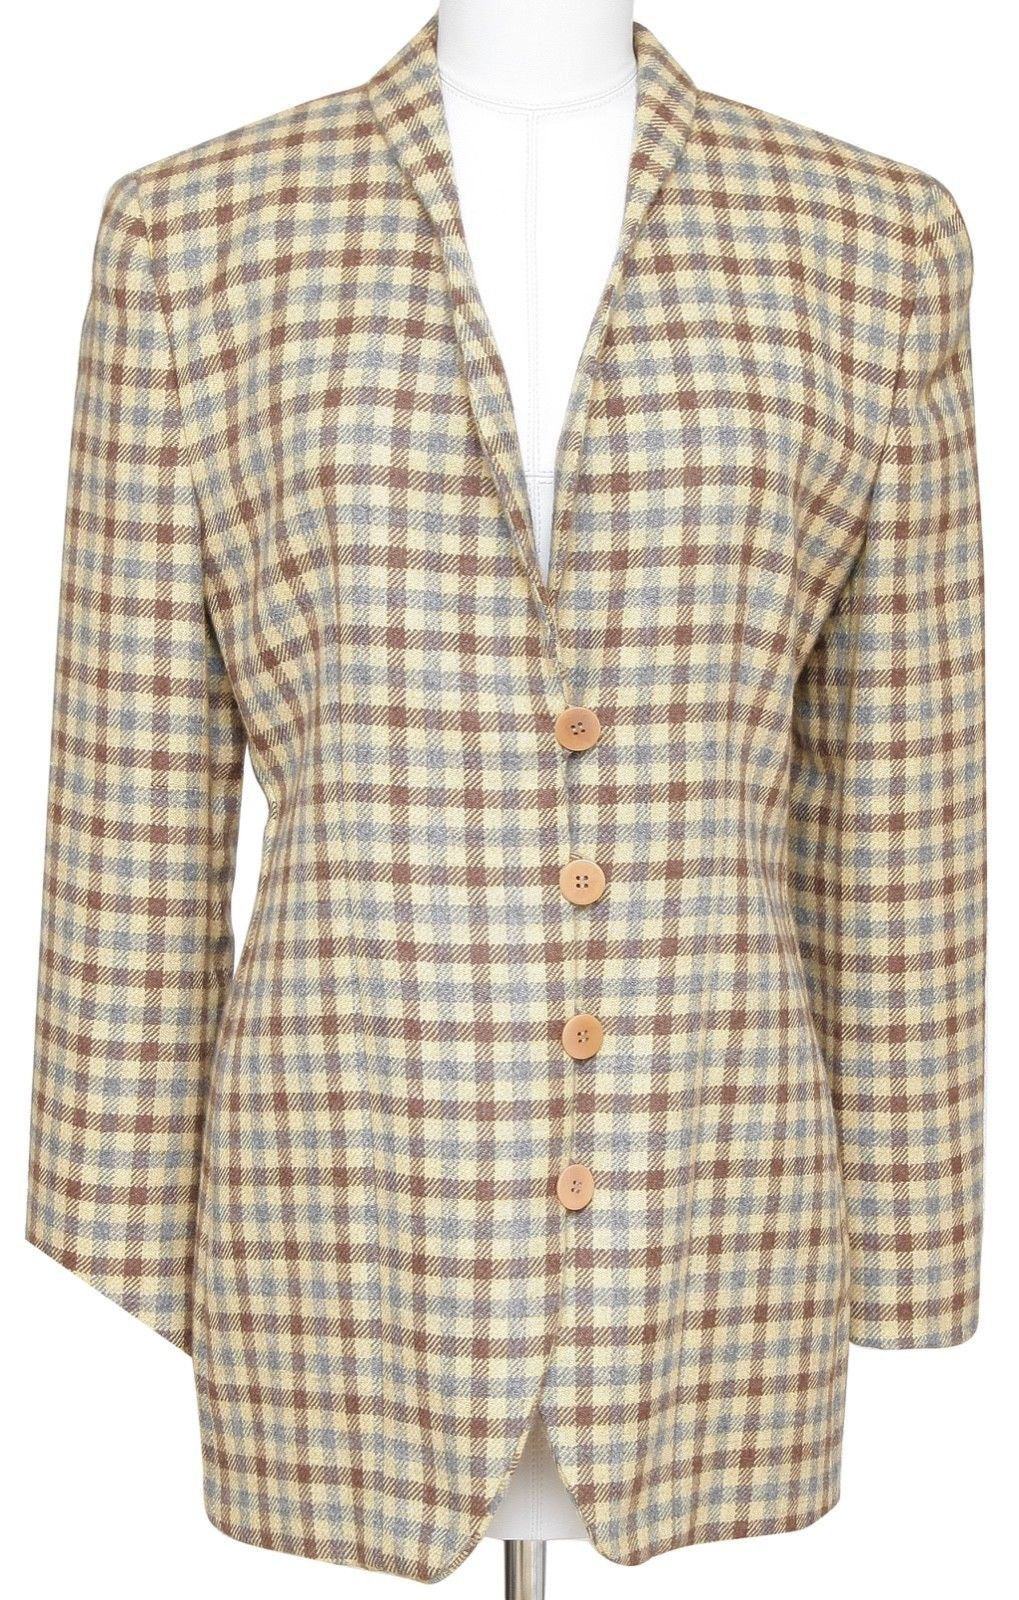 GIORGIO ARMANI Blazer Jacket Houndstooth Yellow Brown Grey Rounded Lapel Sz 42